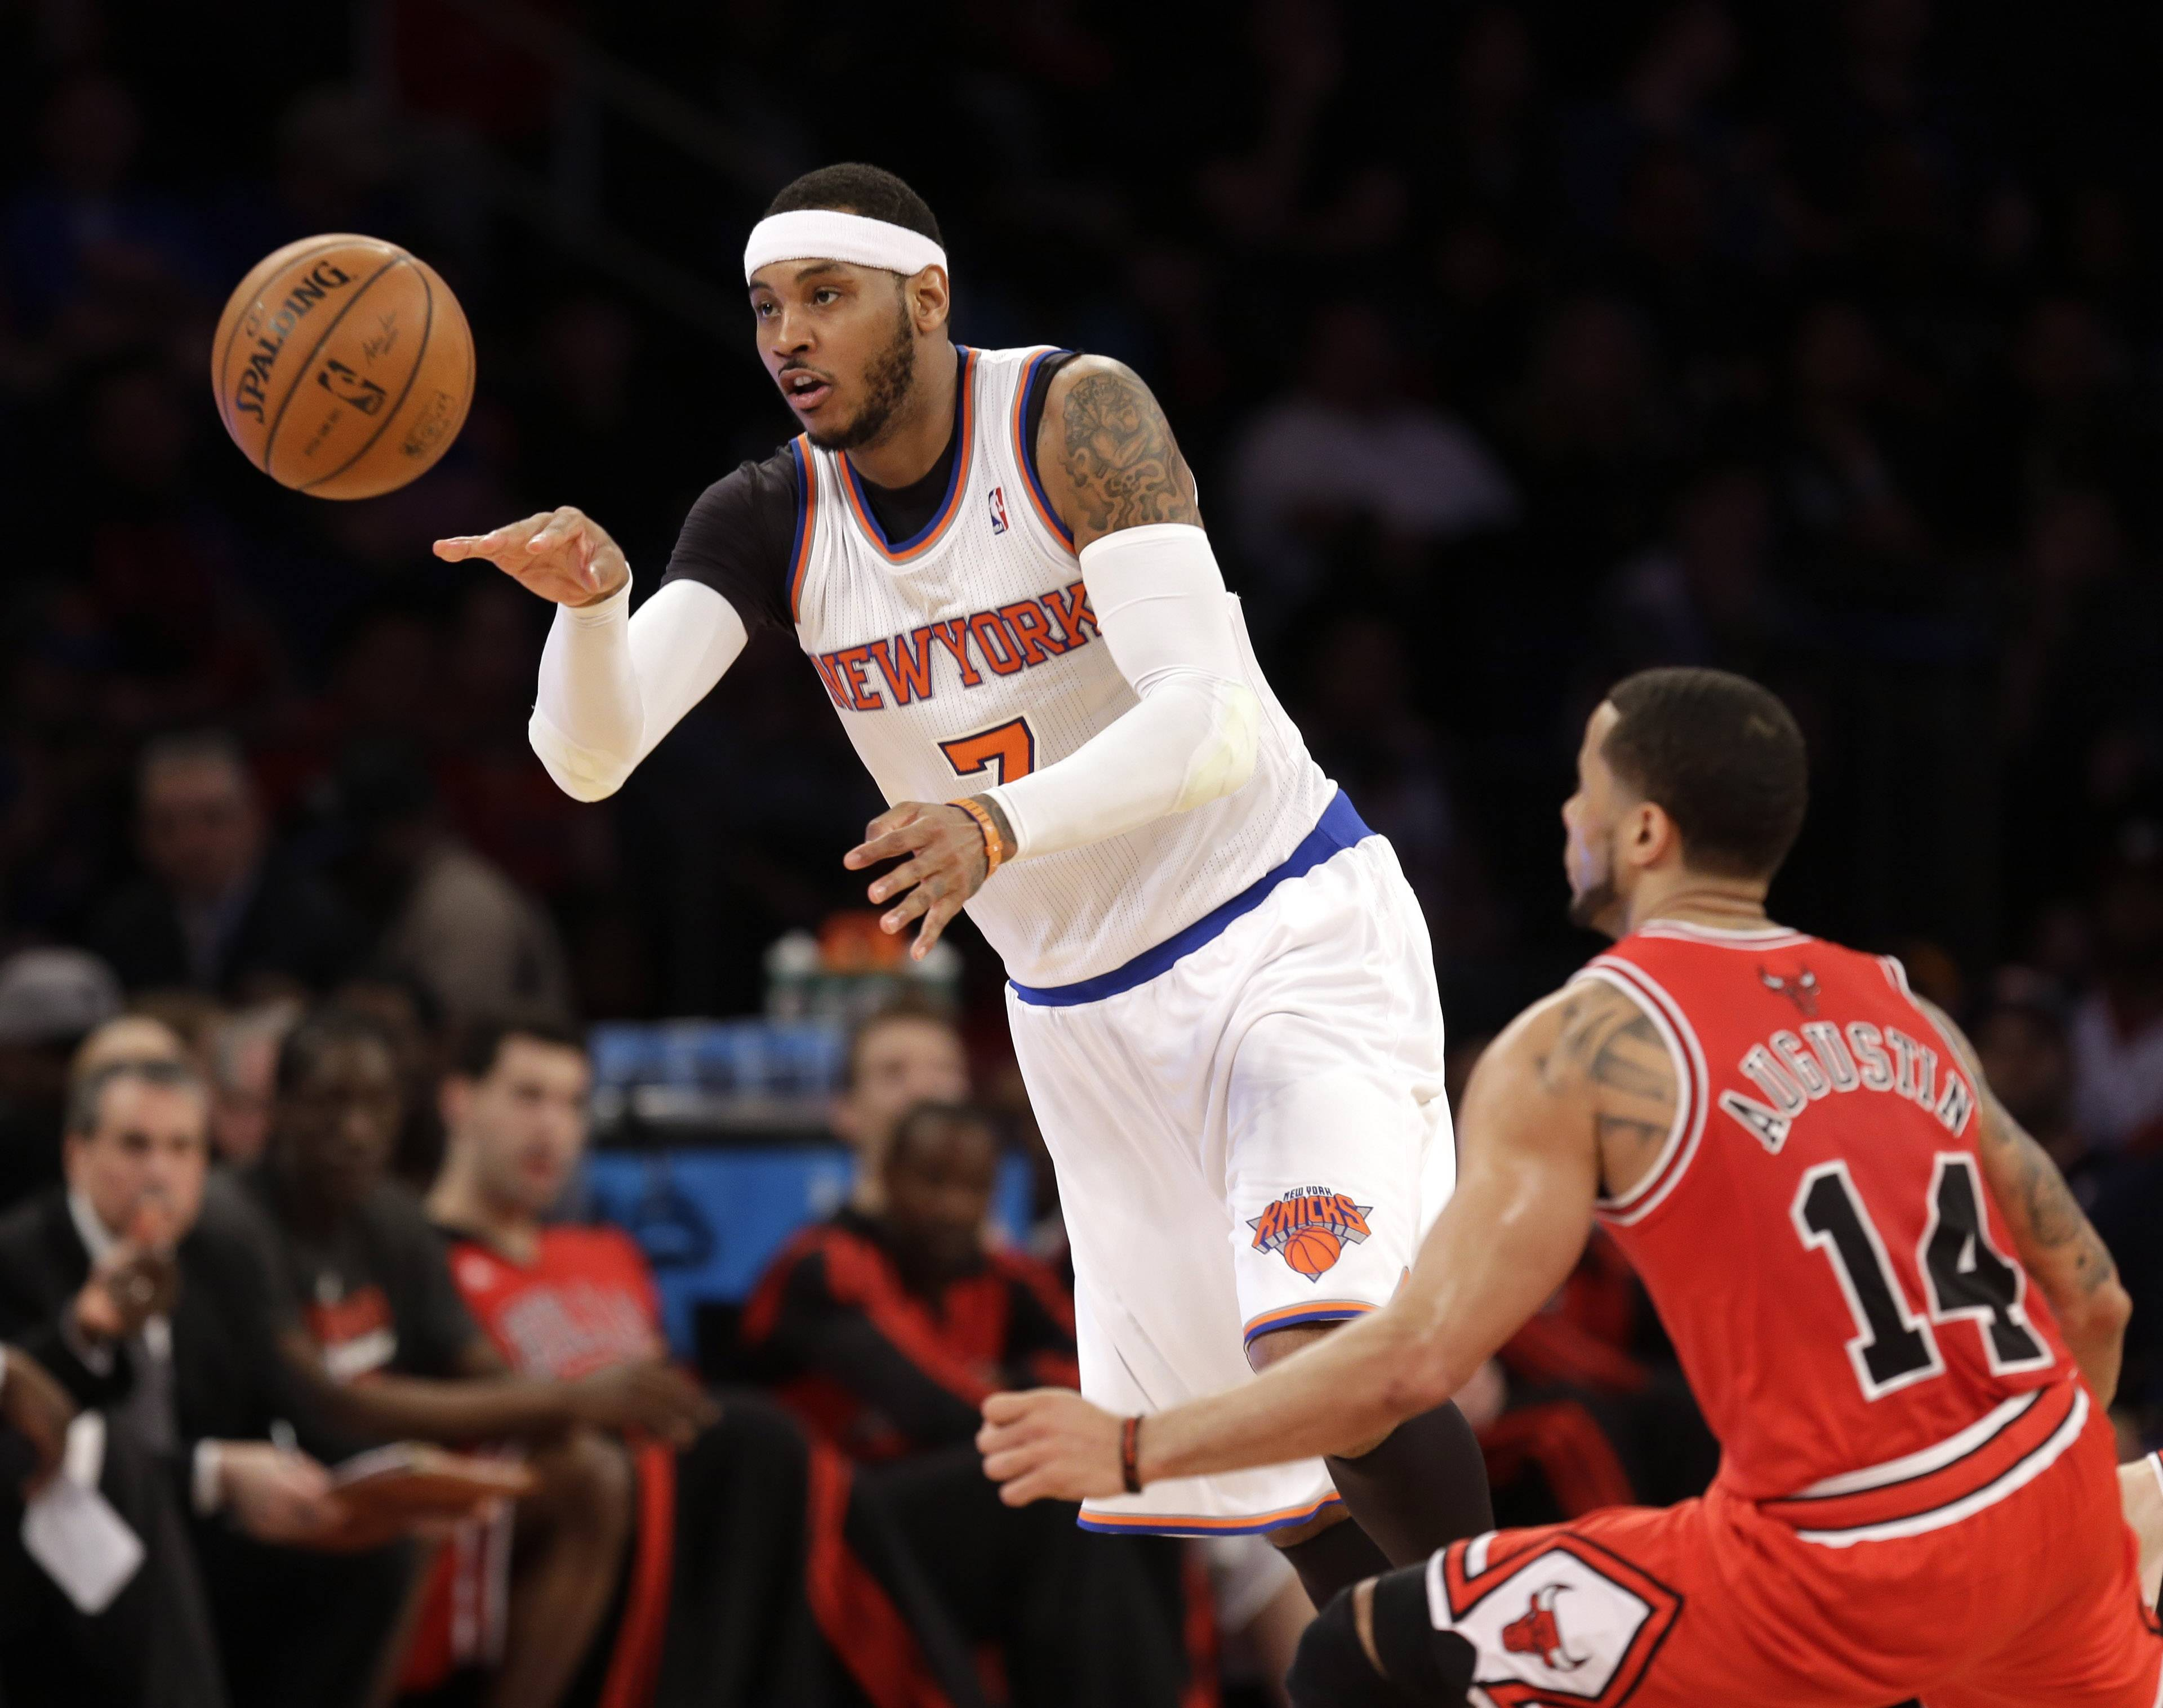 New York Knicks forward Carmelo Anthony, left, is expected to announce Thursday that he will stay in New York to help Phil Jackson rebuild the Knicks, according to the New York Daily News.